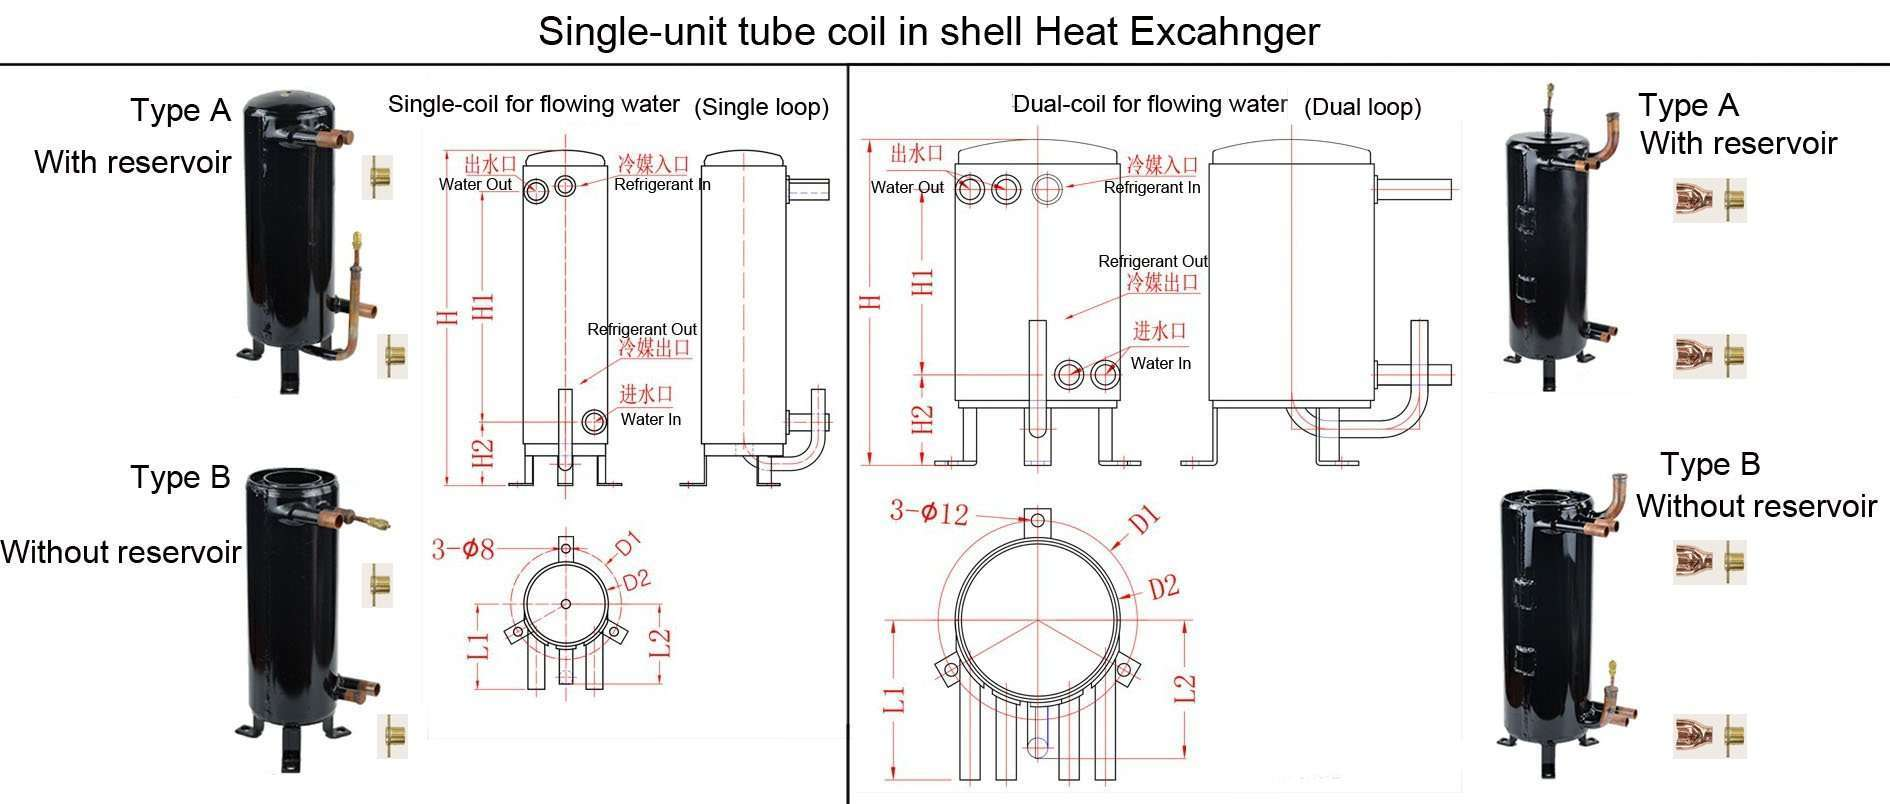 Single-unit tube coil in shell Heat Exchanger